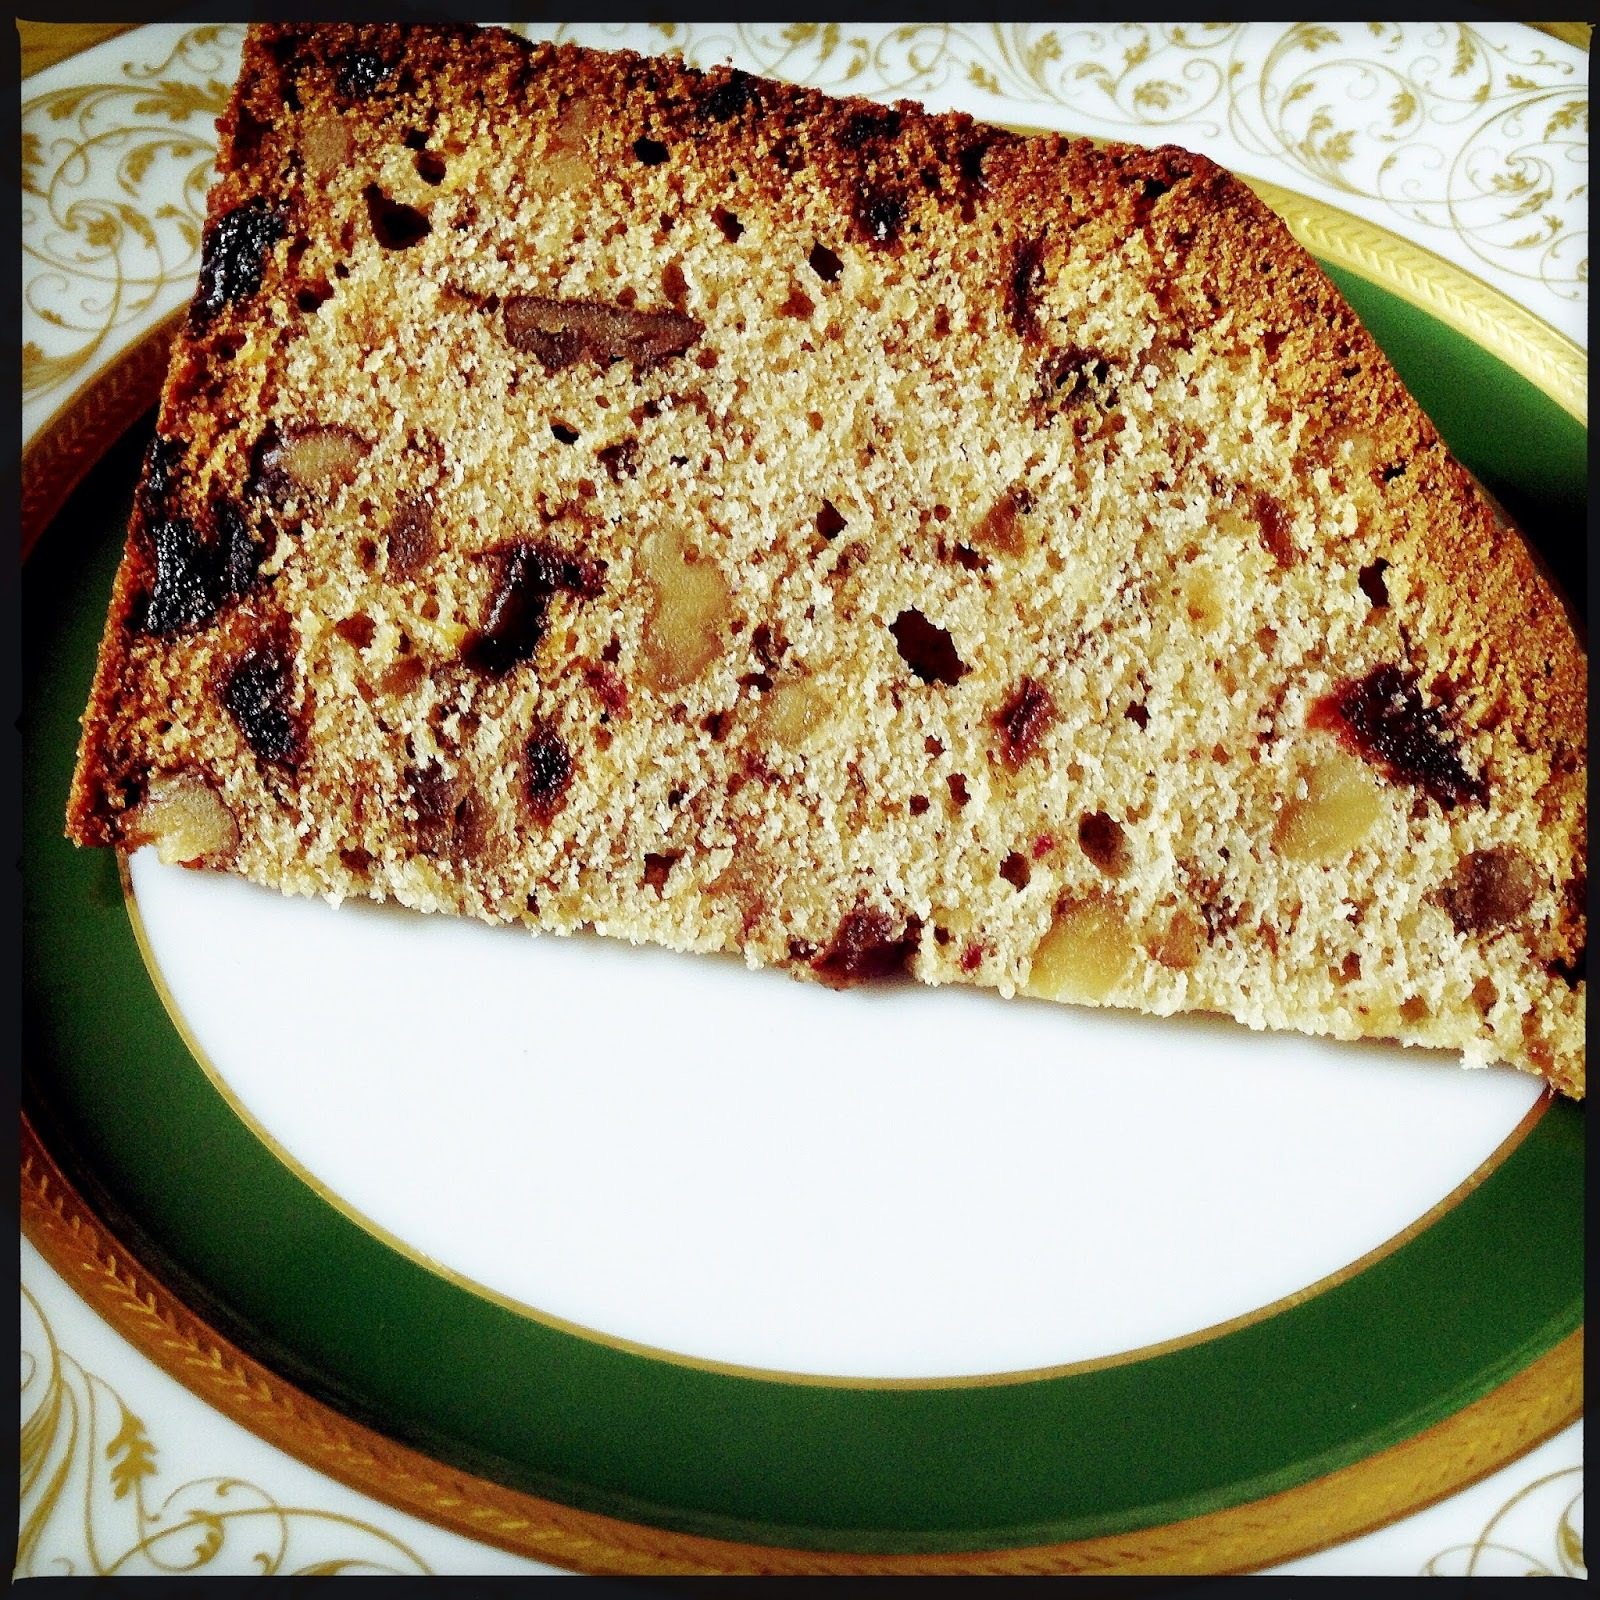 Balliol Date & Walnut Cake